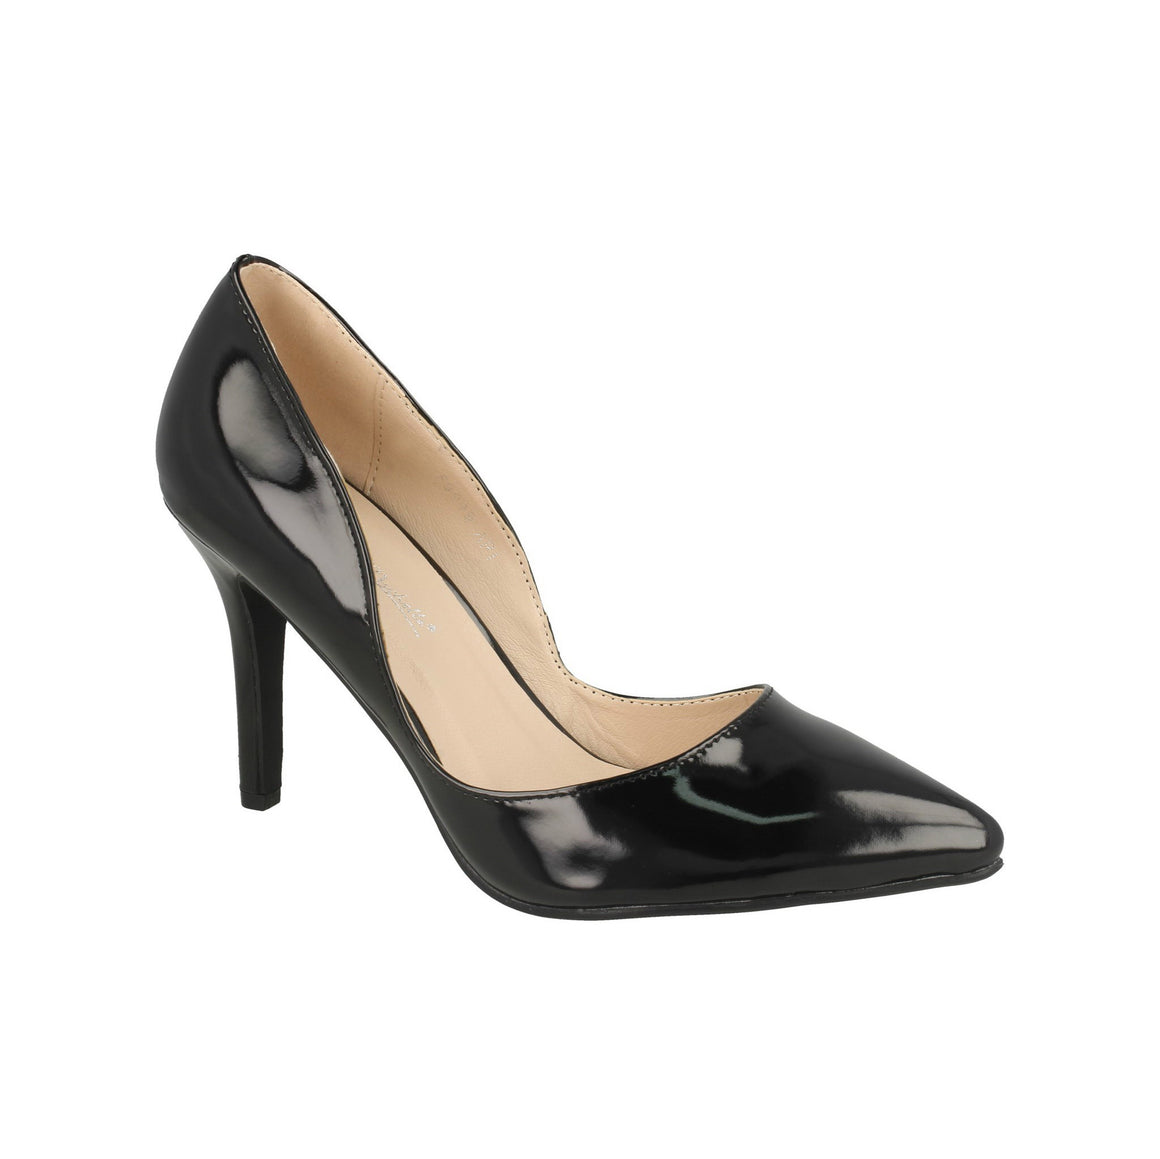 Black Patent Stiletto Heels - Pretty Kitty Fashion